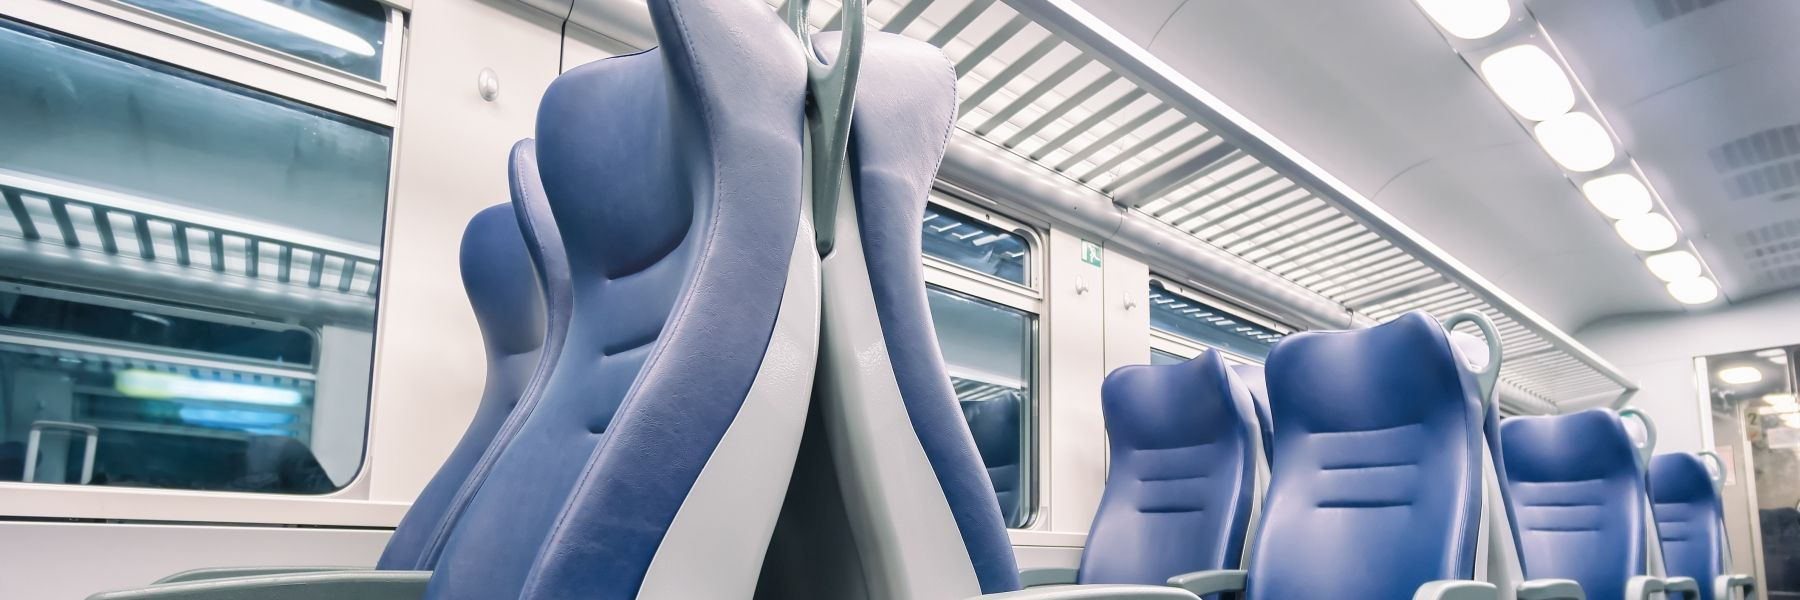 LEXAN polycarbonate sheet flame retardant thermoplastic opaque train seats seating walls ceilings